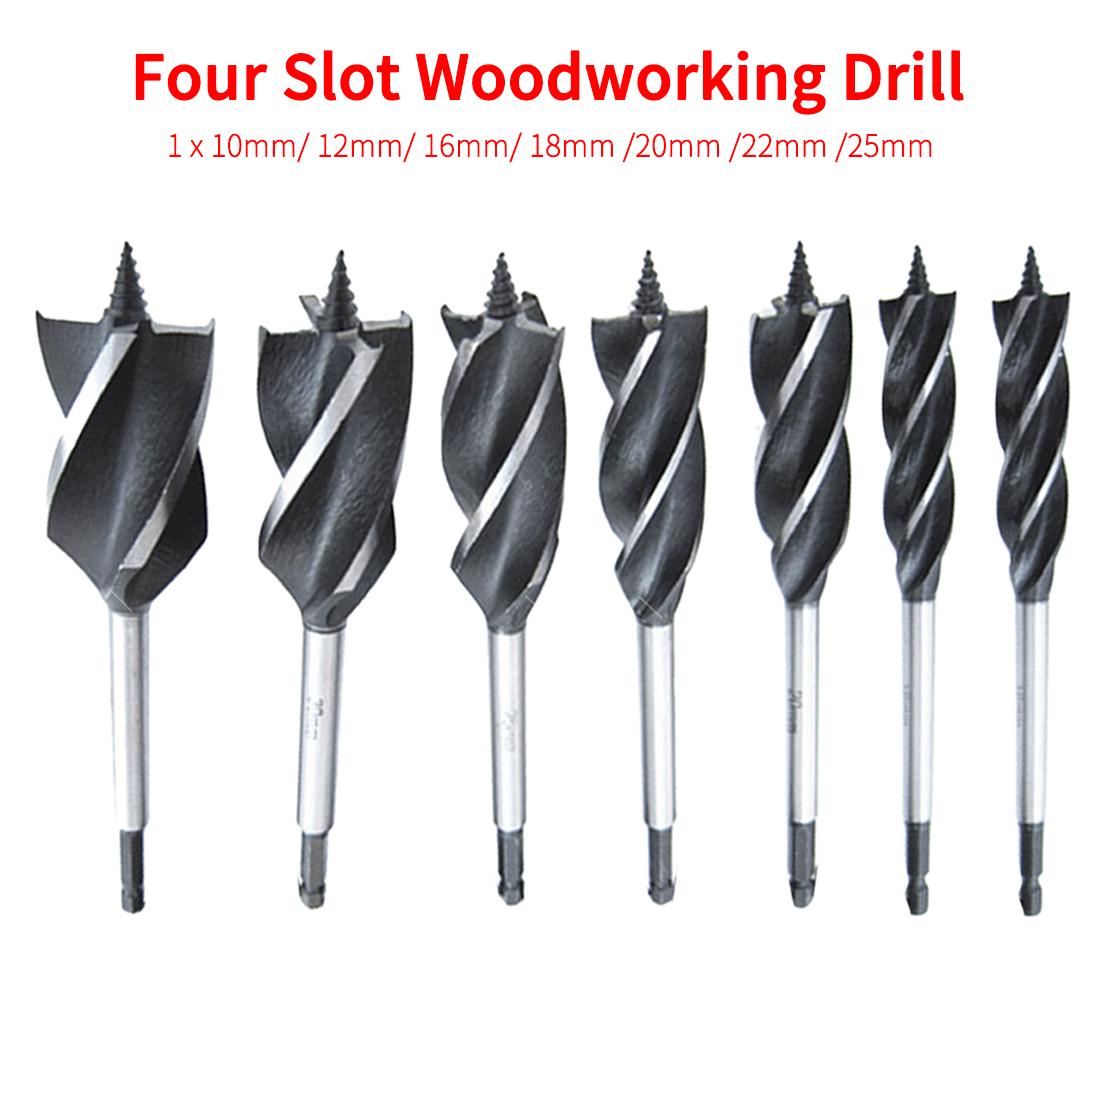 10mm-25mm Four-slot Four-blade Woodworking Drill Bit Deep Hole Twist Drill Wood Door Lock Hole Opener Hex Shank